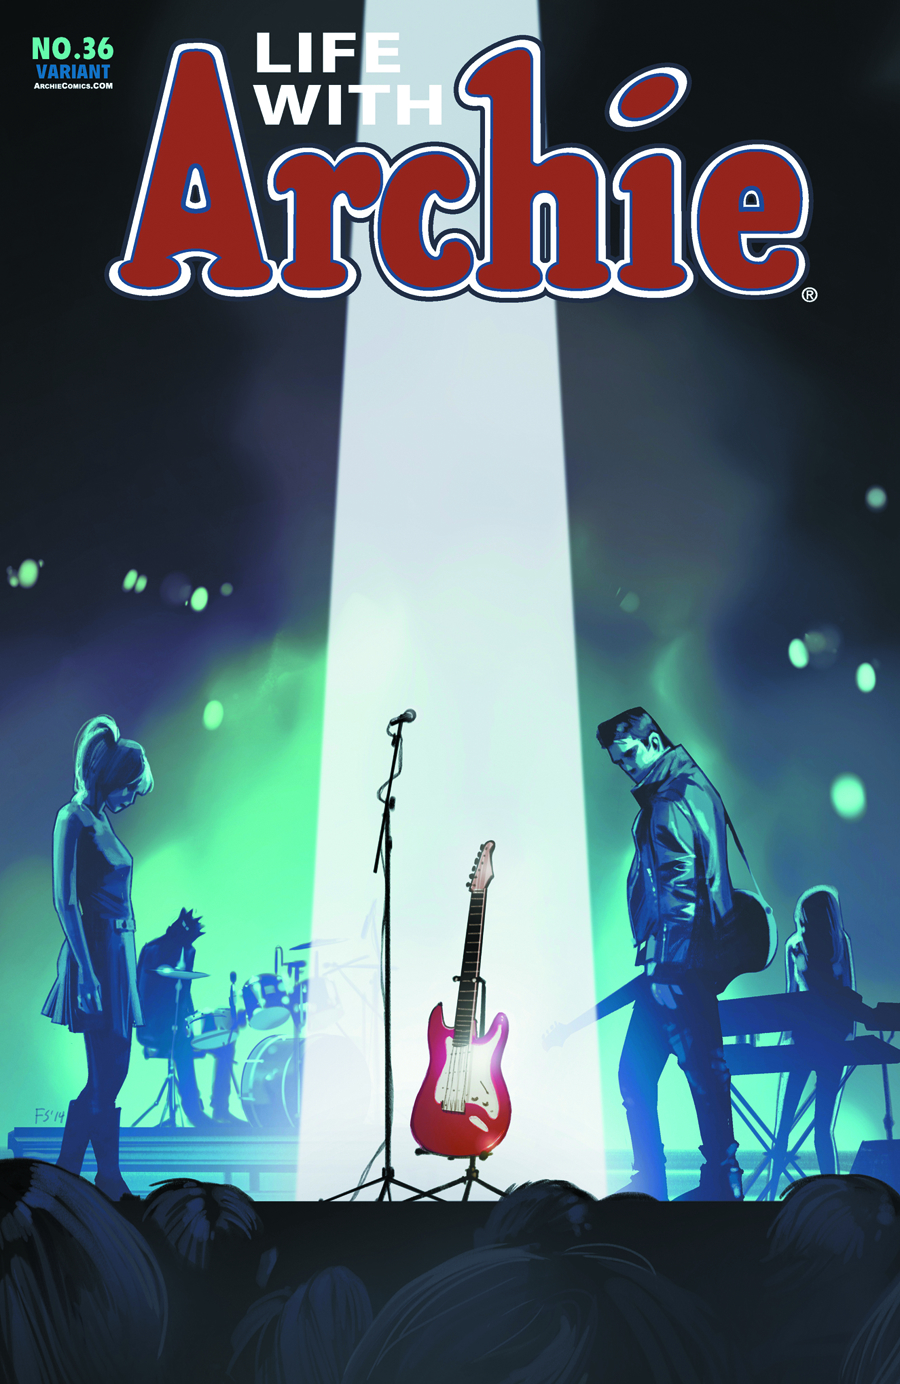 LIFE WITH ARCHIE COMIC #36 FIONA STAPLES CVR